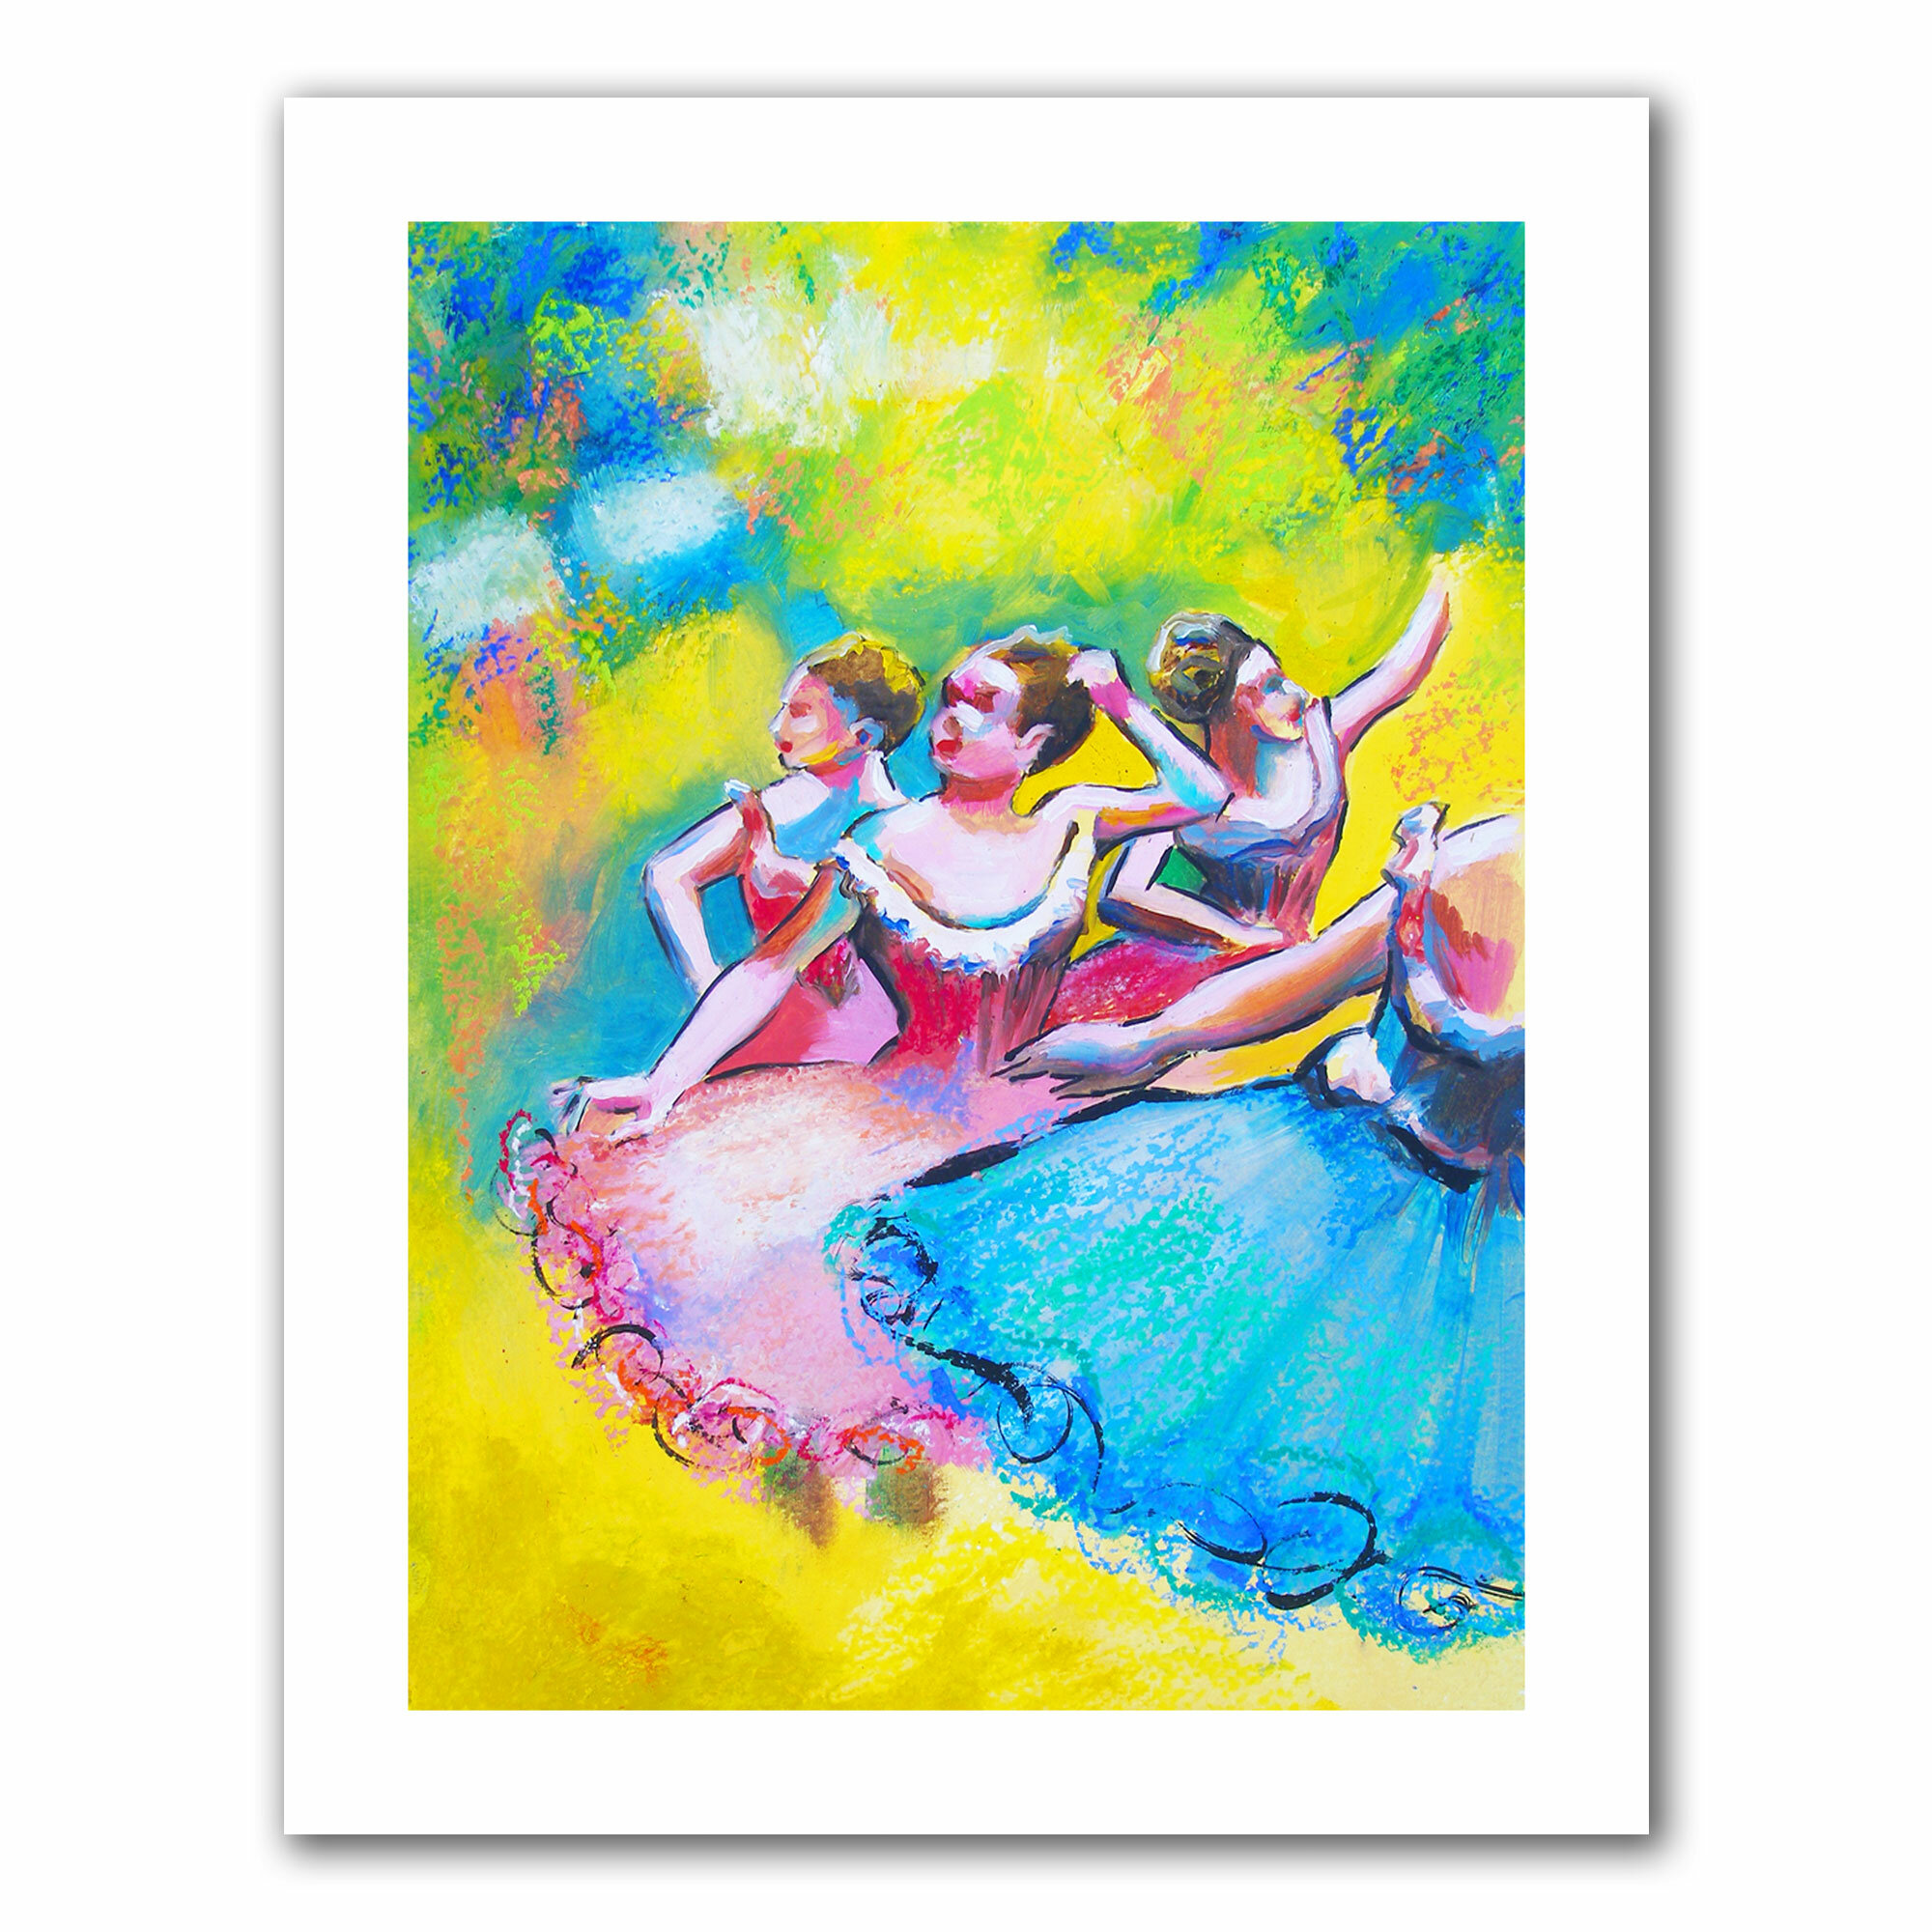 18 By 18 Inch Art Wall Dinner Service Unwrapped Canvas Art By Susi Franco Posters Prints